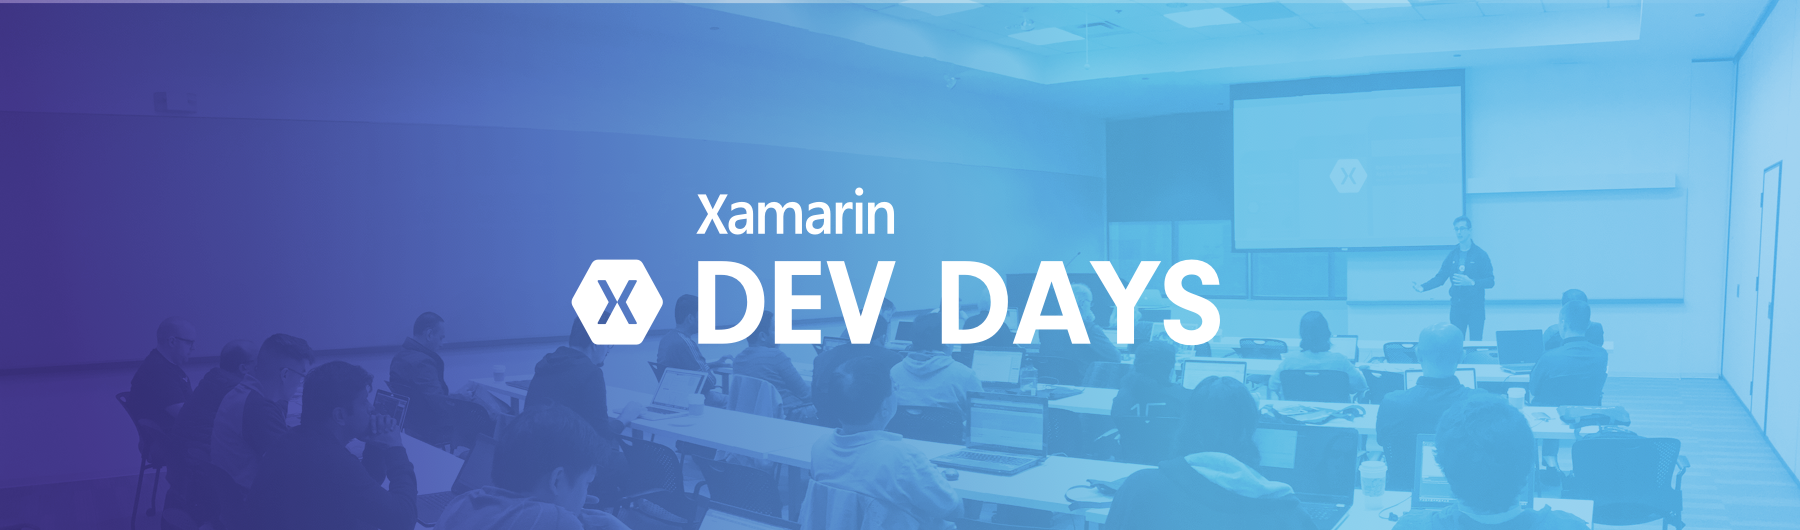 Xamarin Dev Days - Cape Town